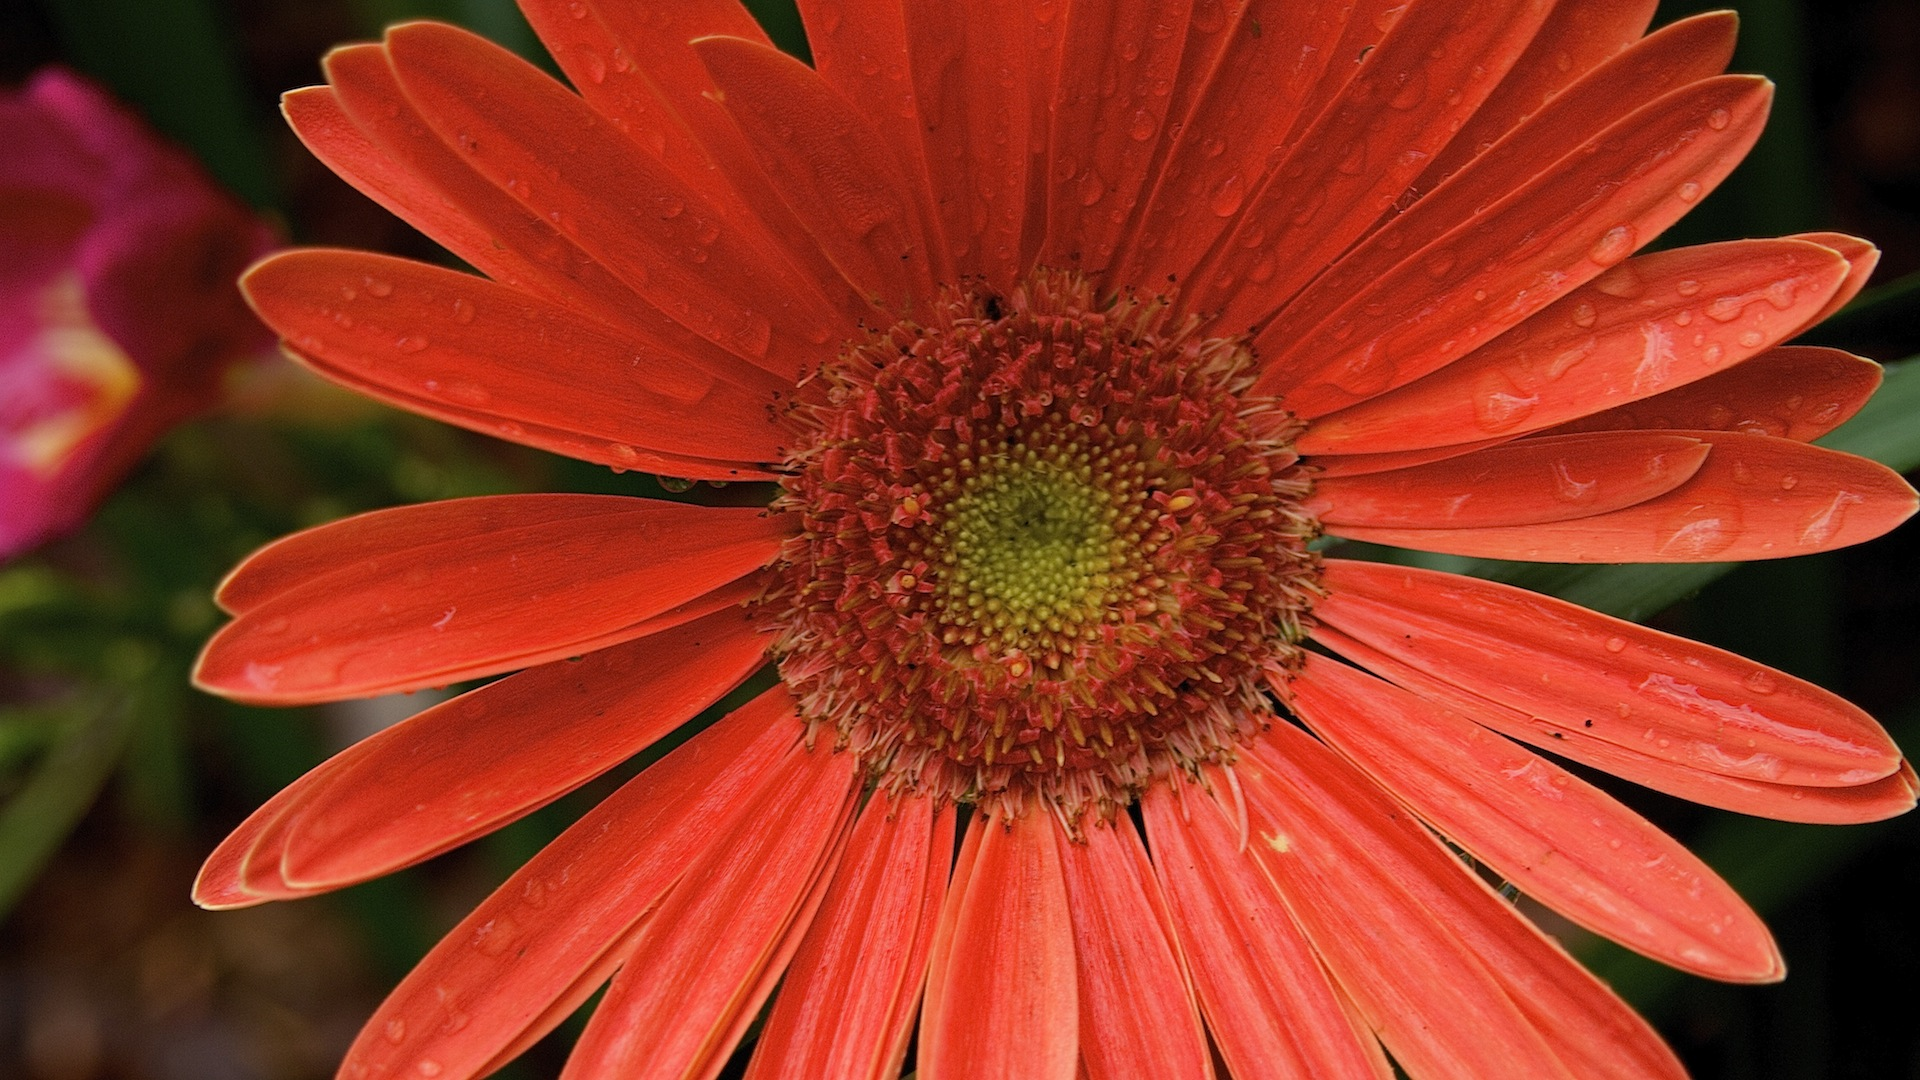 Gerbera Daisy Desktop for Pinterest 1920x1080